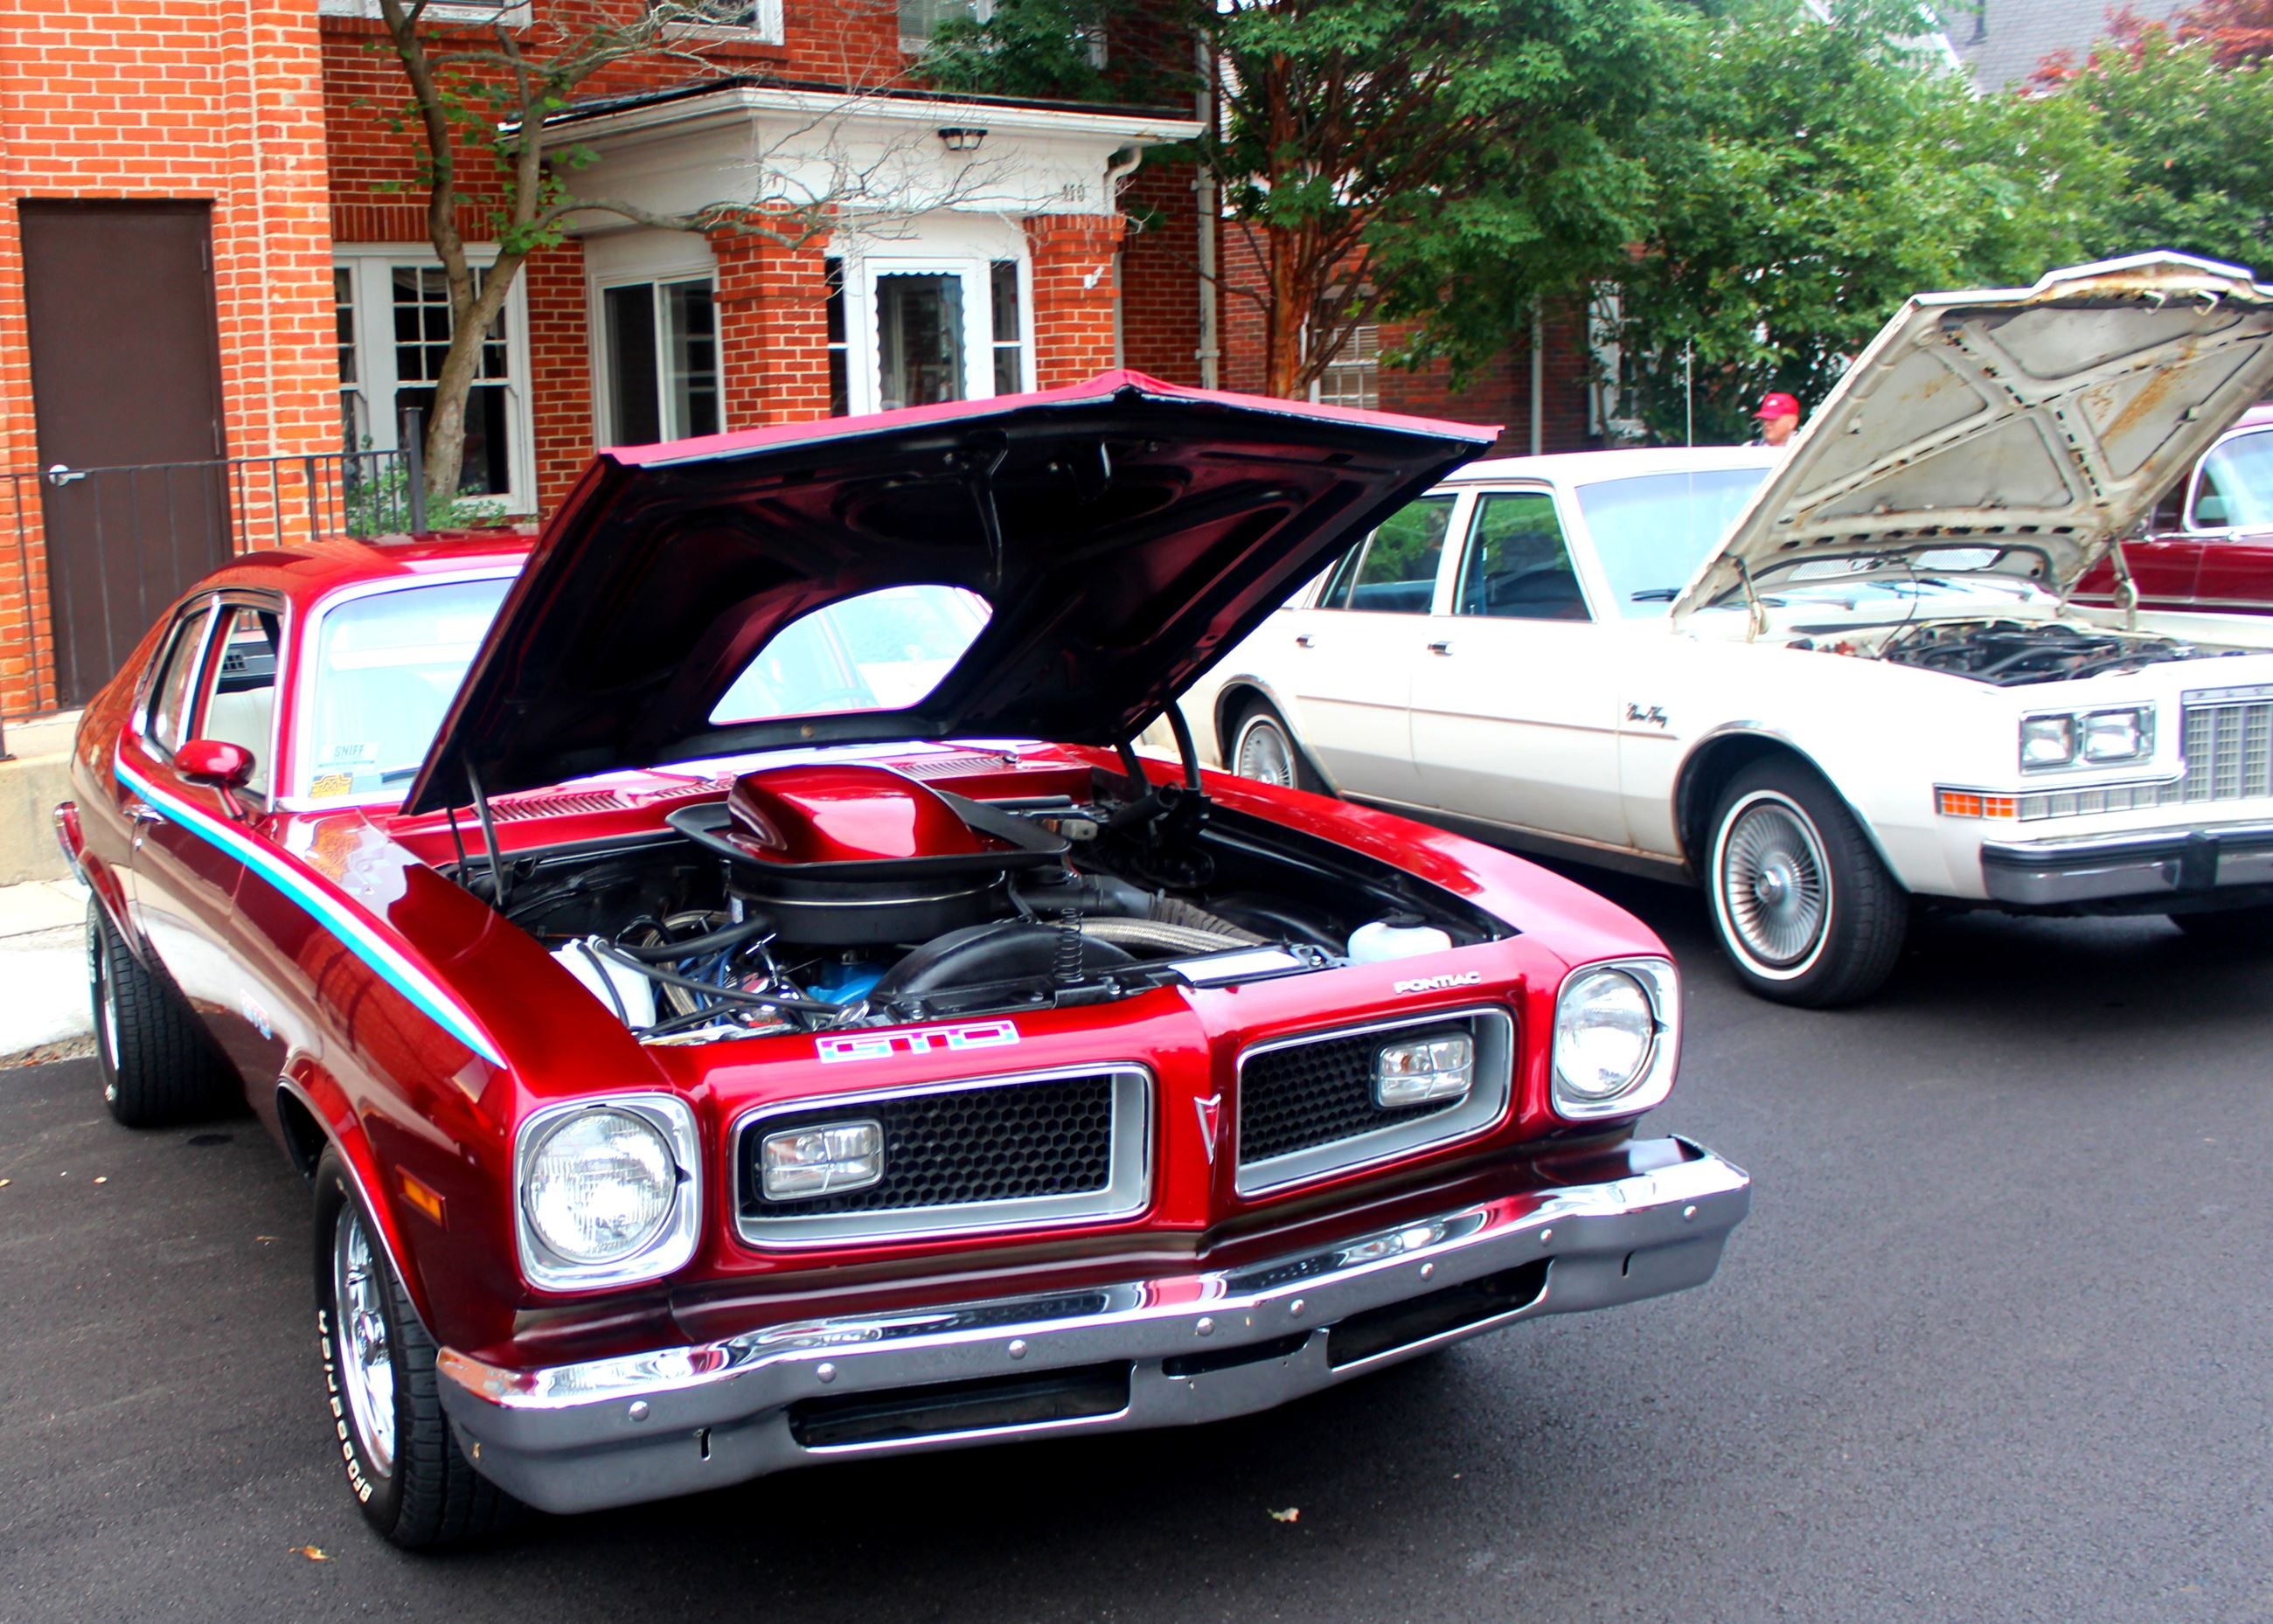 Photo of red vintage GTO car